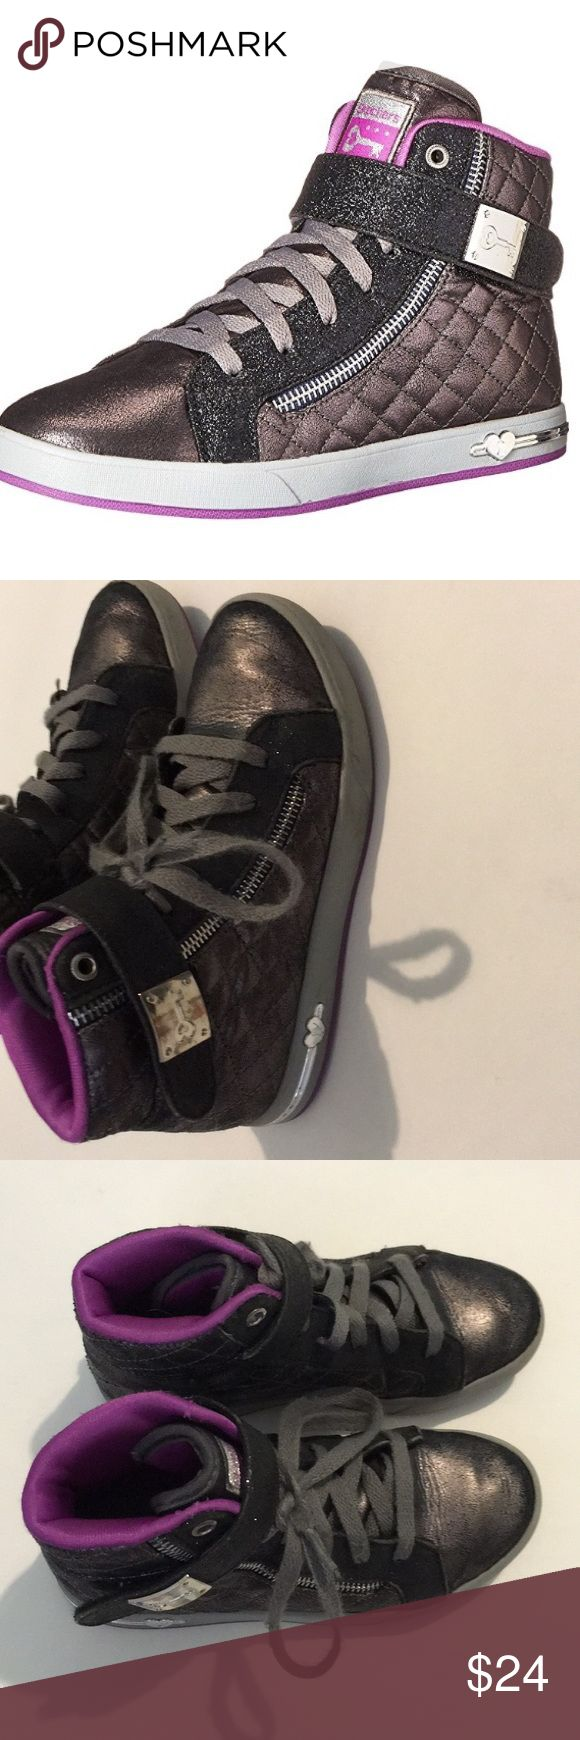 Girls Skechers shoes Good condition. Has laces and Velcro. Skechers Shoes